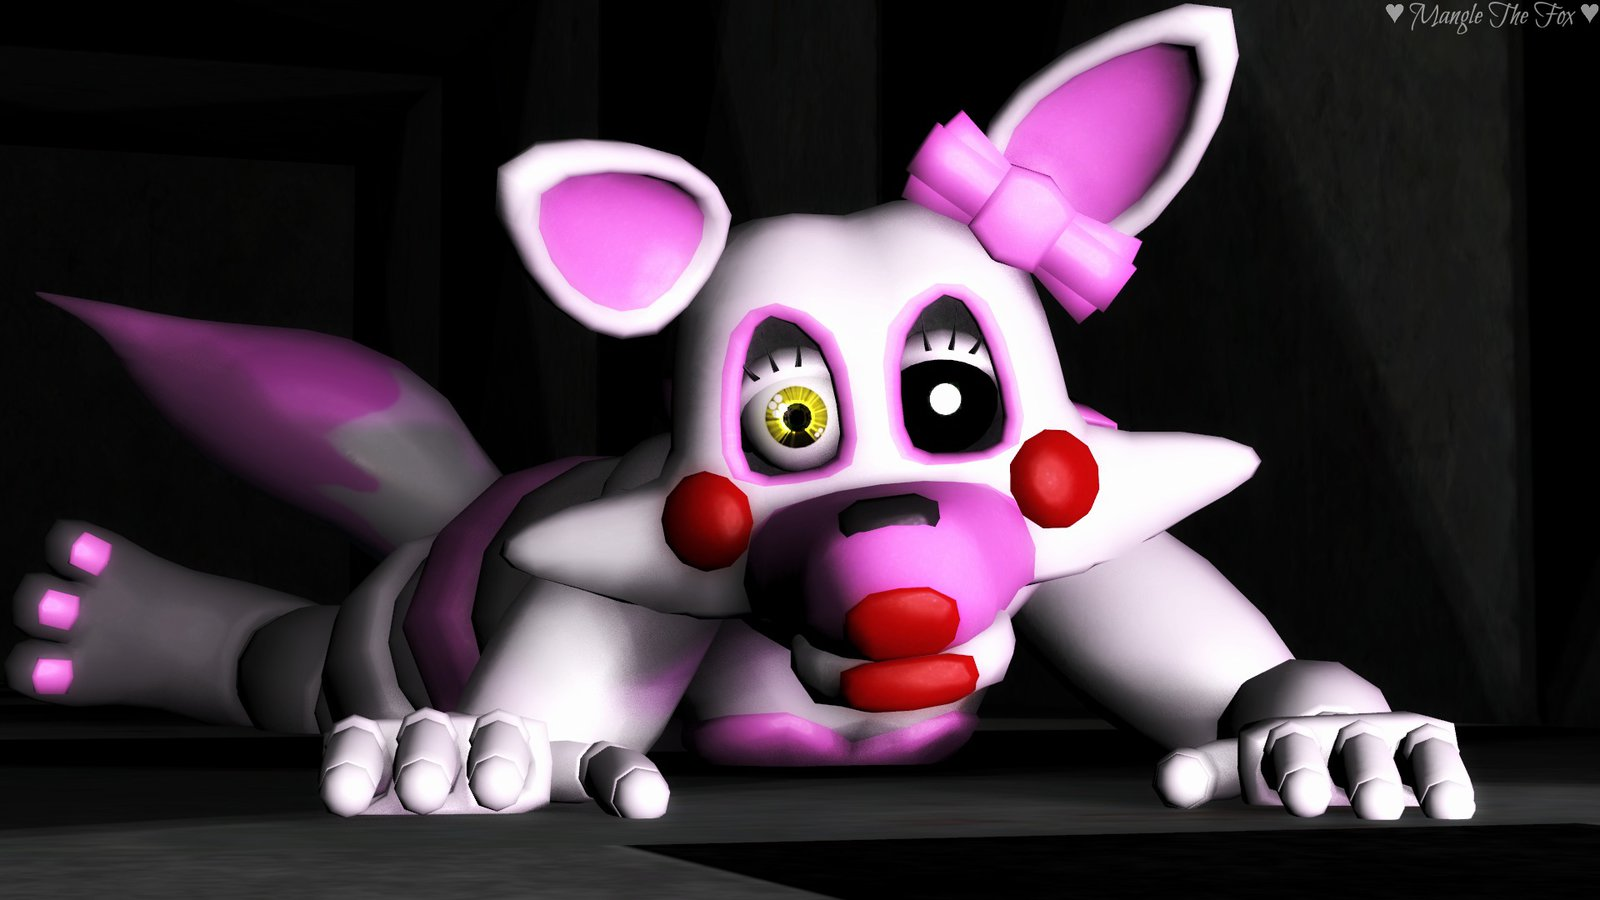 fnaf sfm baby mangle crawling in the vent par manglethefoxsfm da5zptn